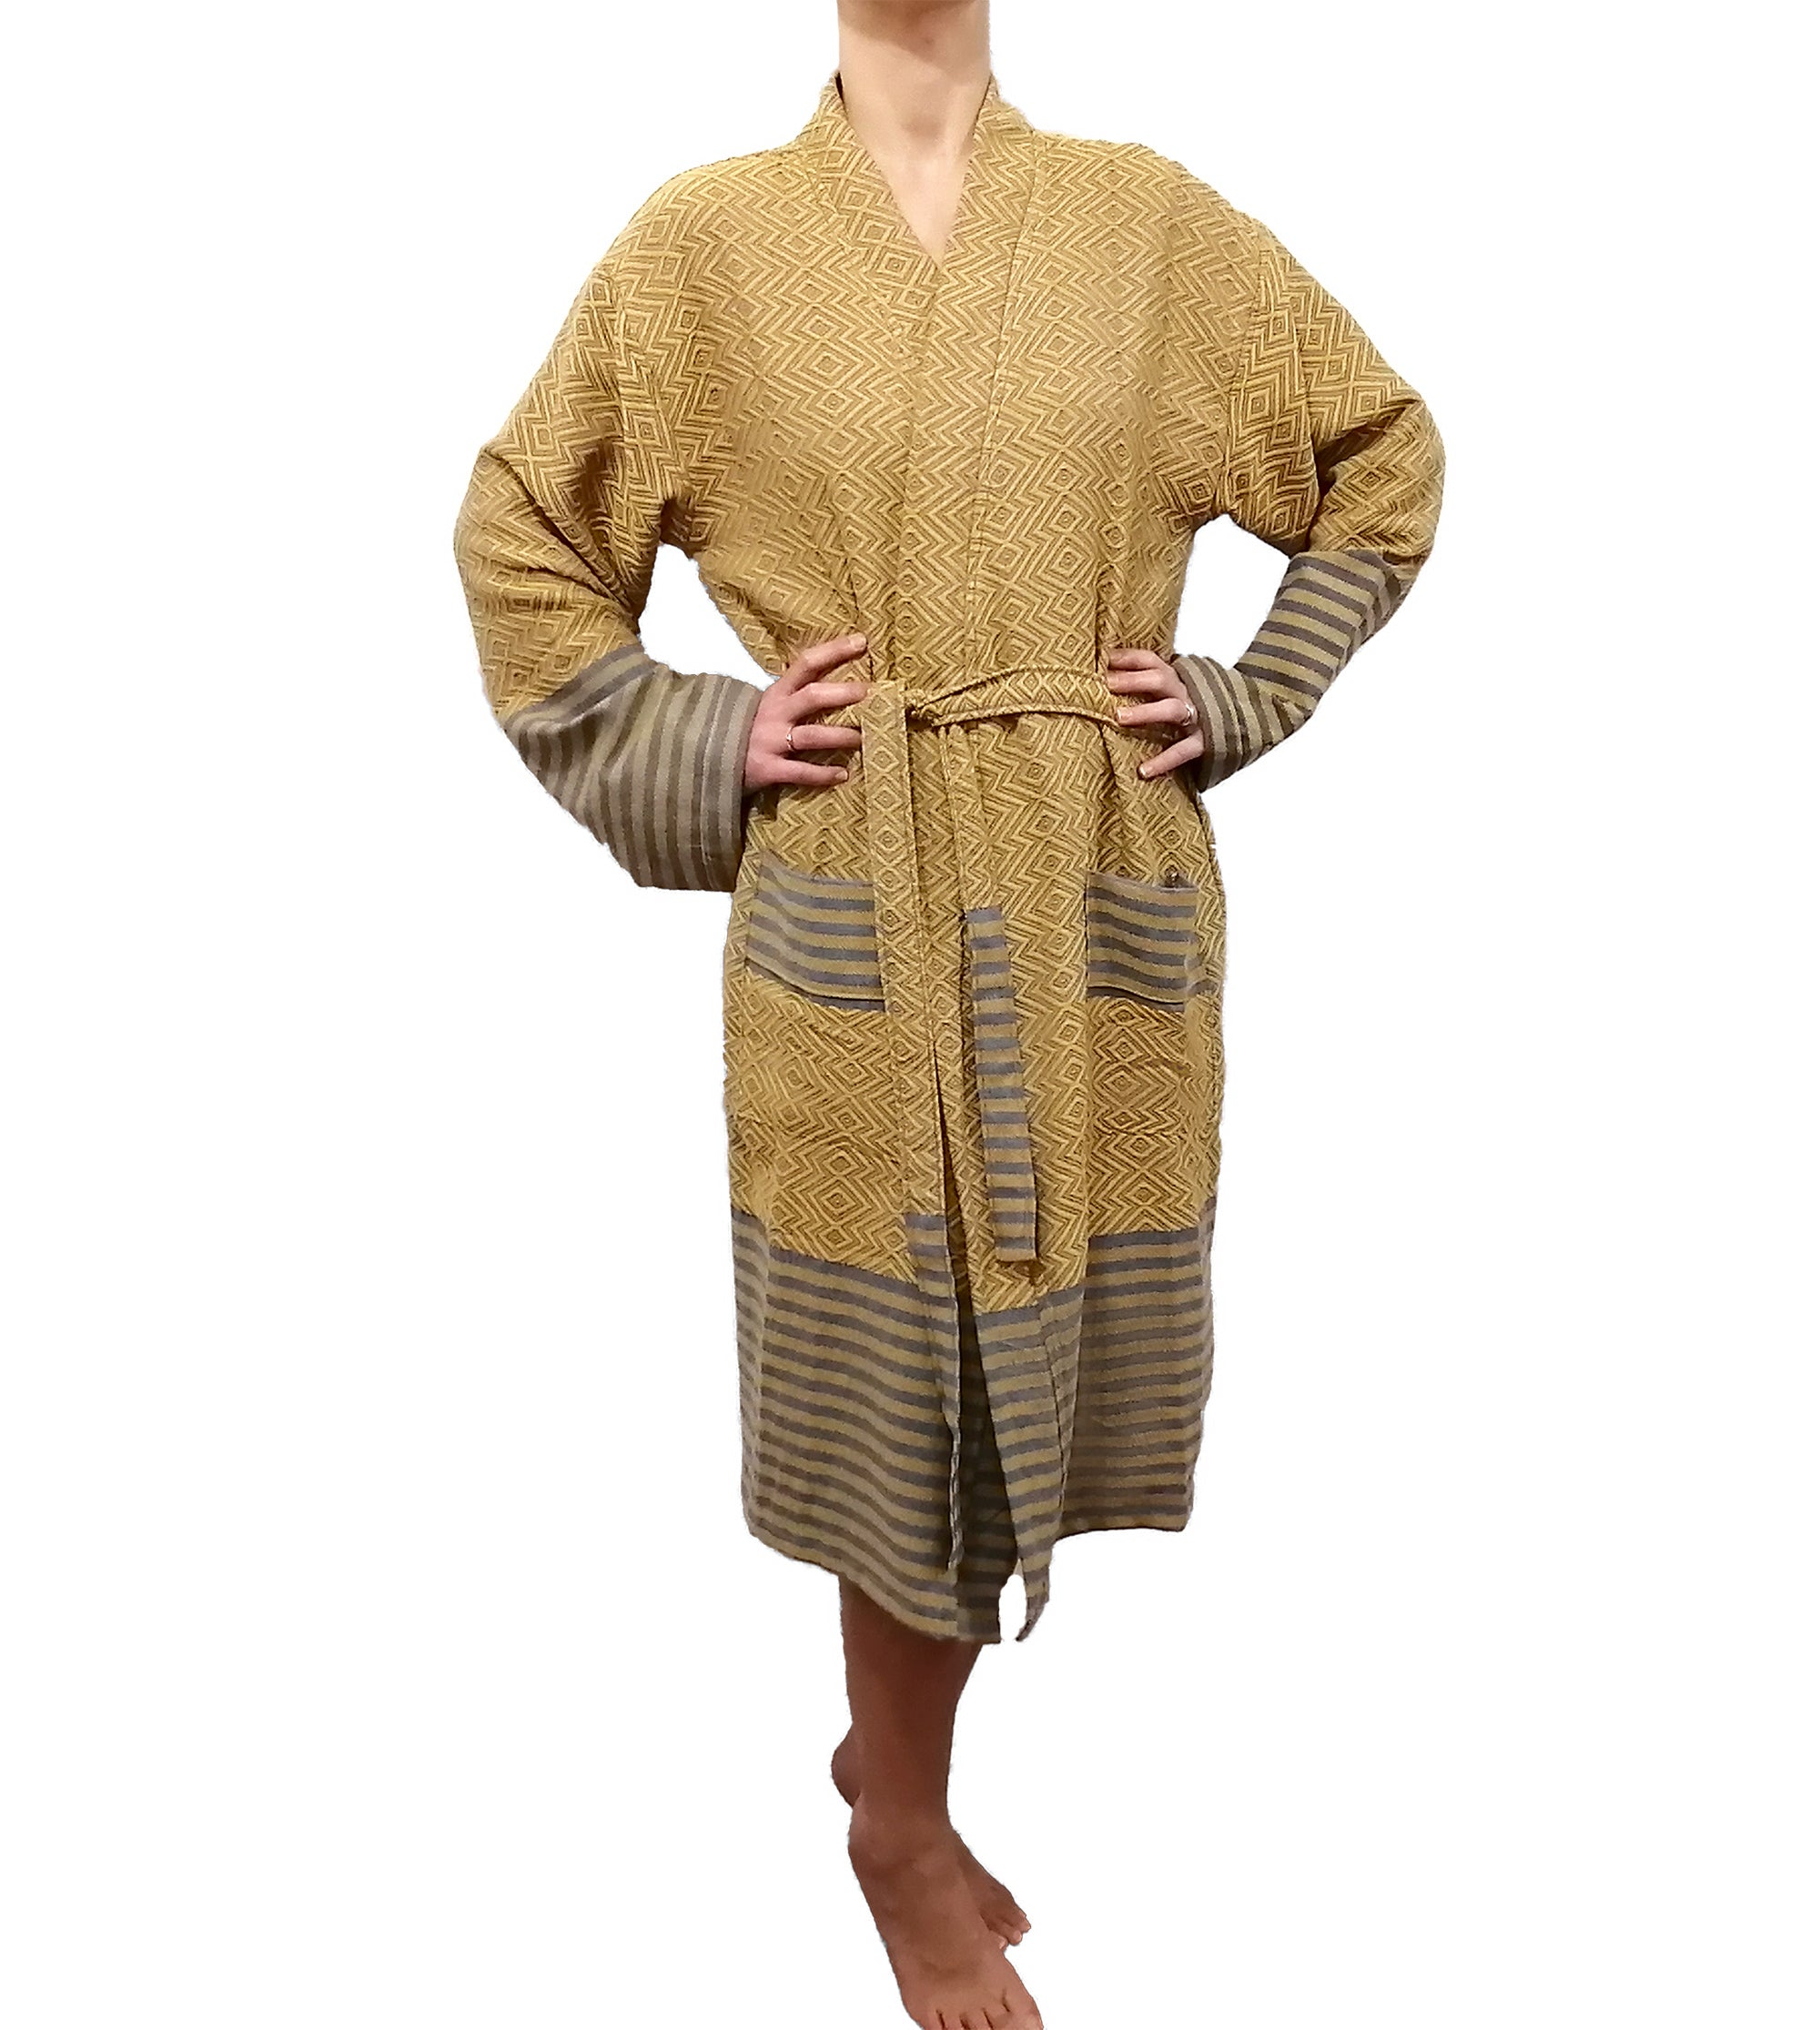 Turkish Towel robe sultan gold made with the finest quality Turkish cotton, super soft, lightweight Turkish towel robes, Perfect for drying off and staying warm, superior absorbency.it is with arrow pattern.